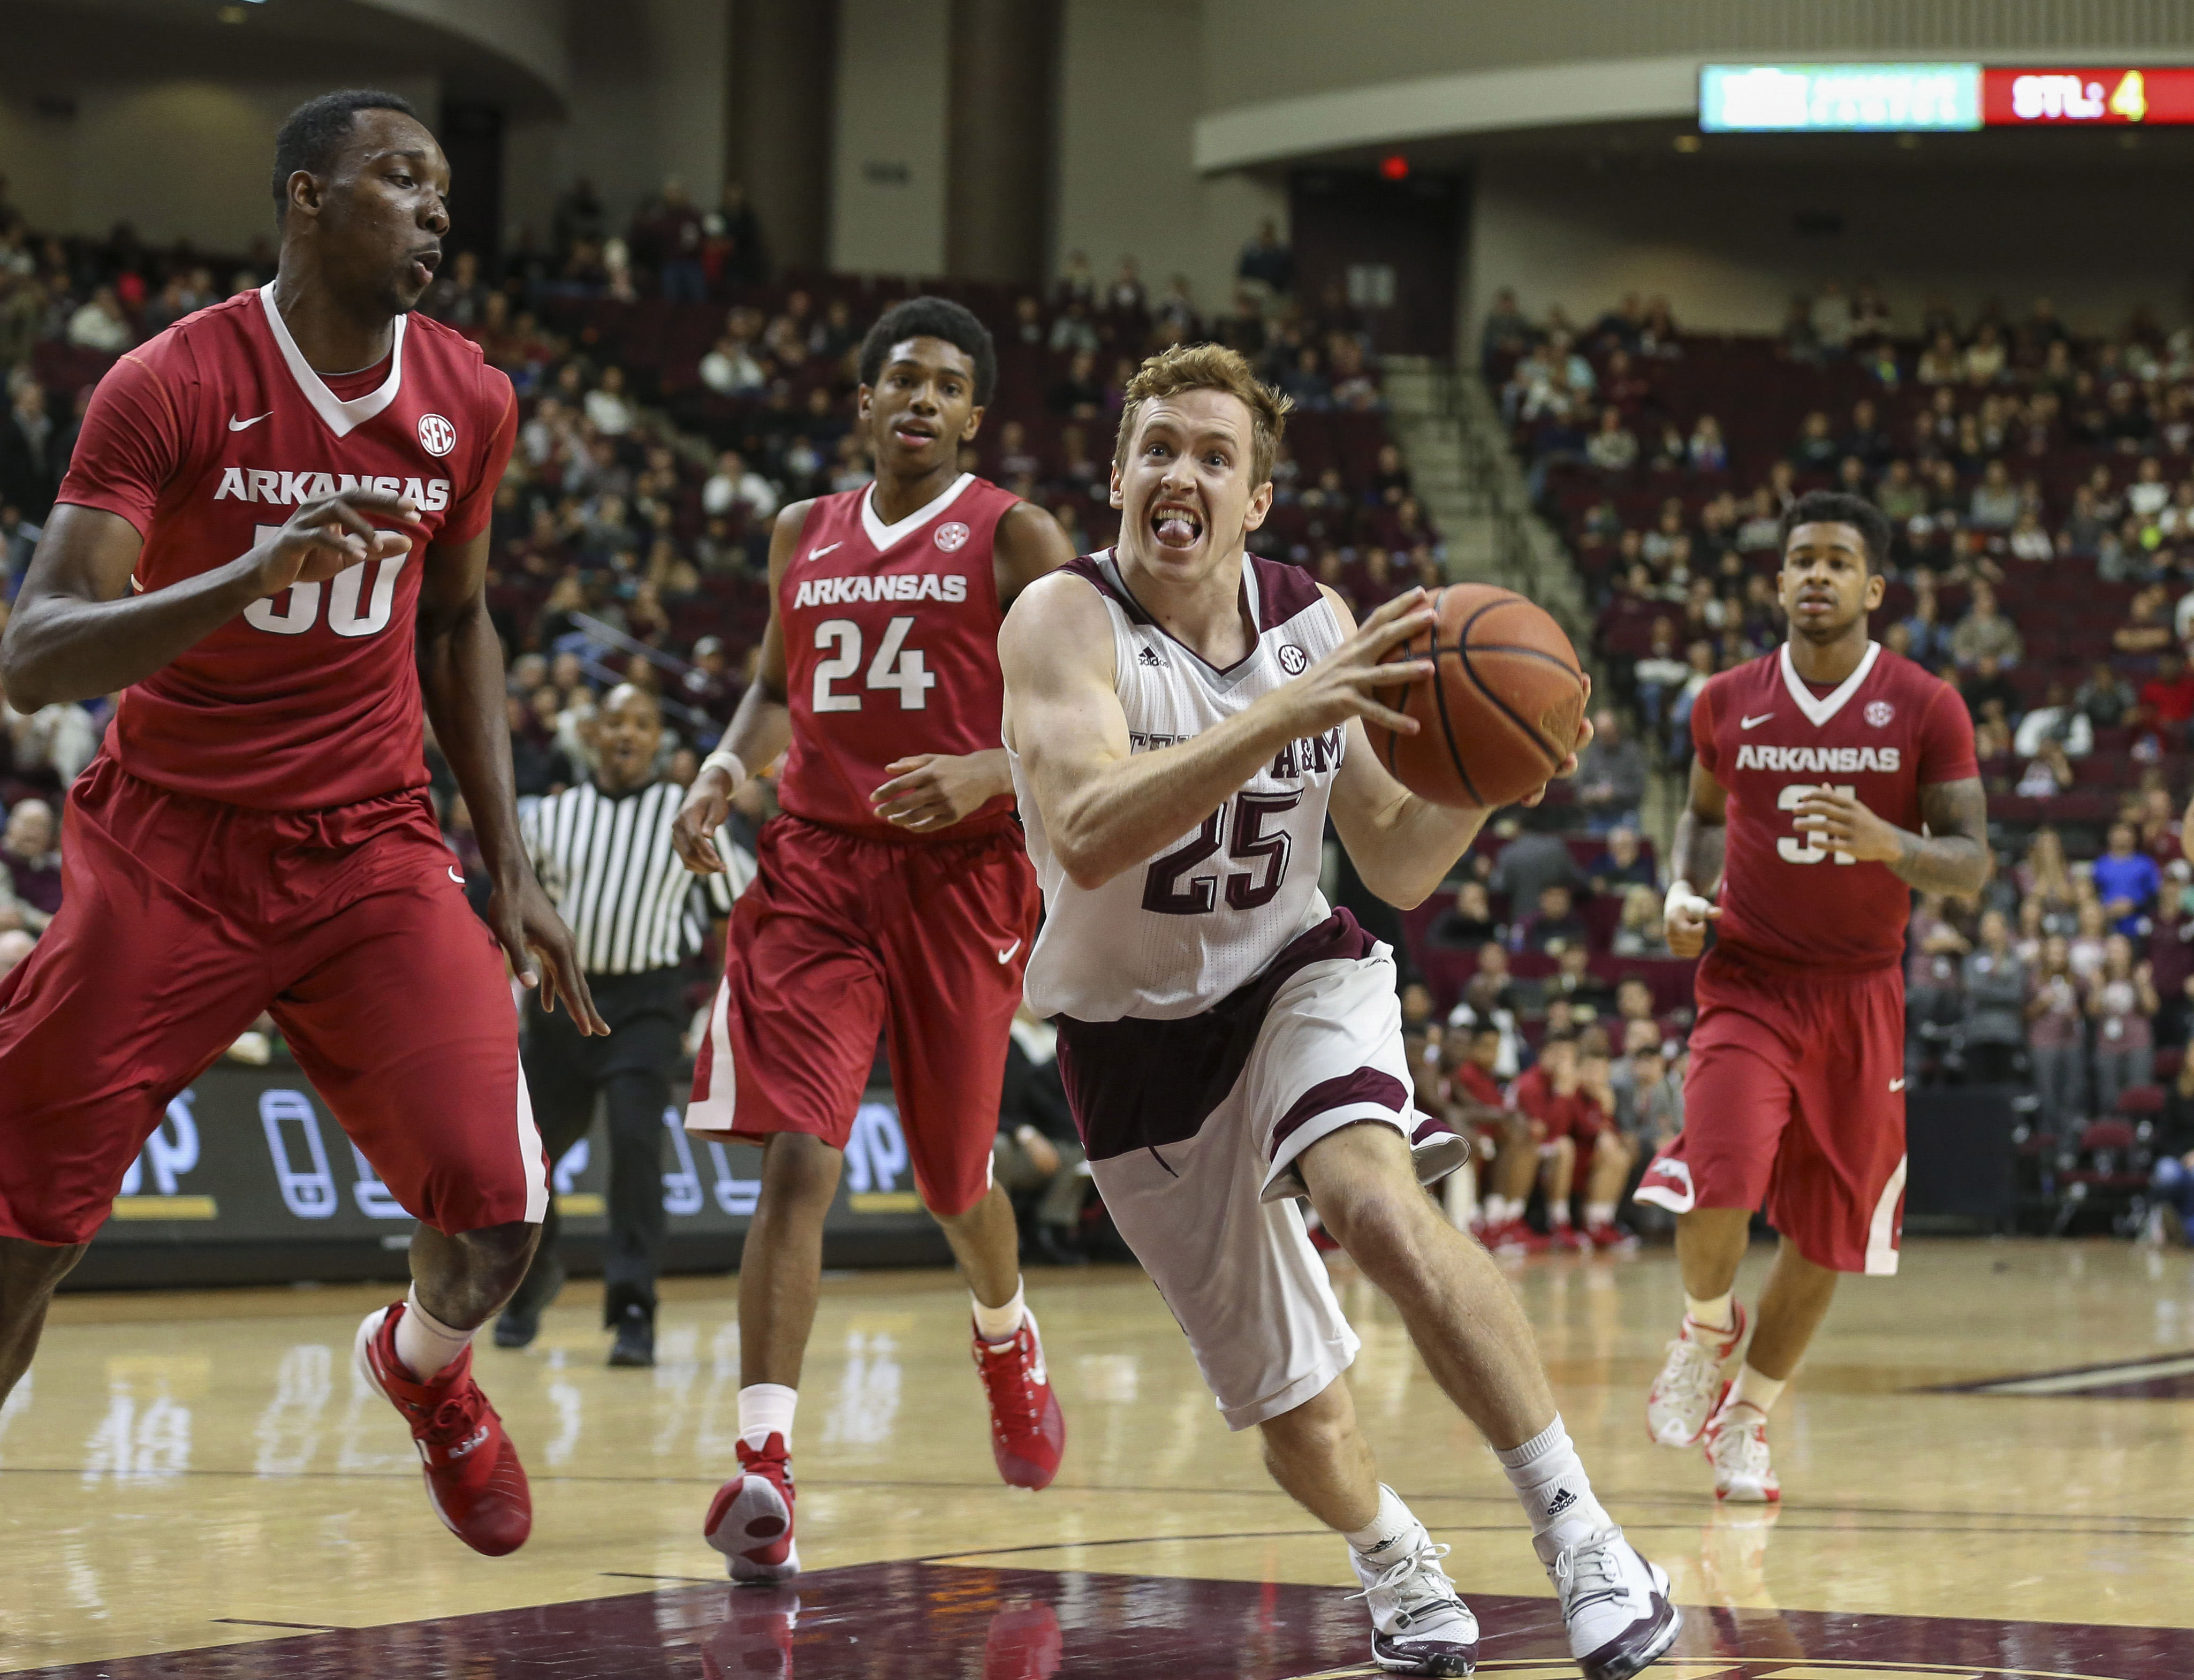 Kyle Drobbins' spirit is what powers the Aggie Basketball team.